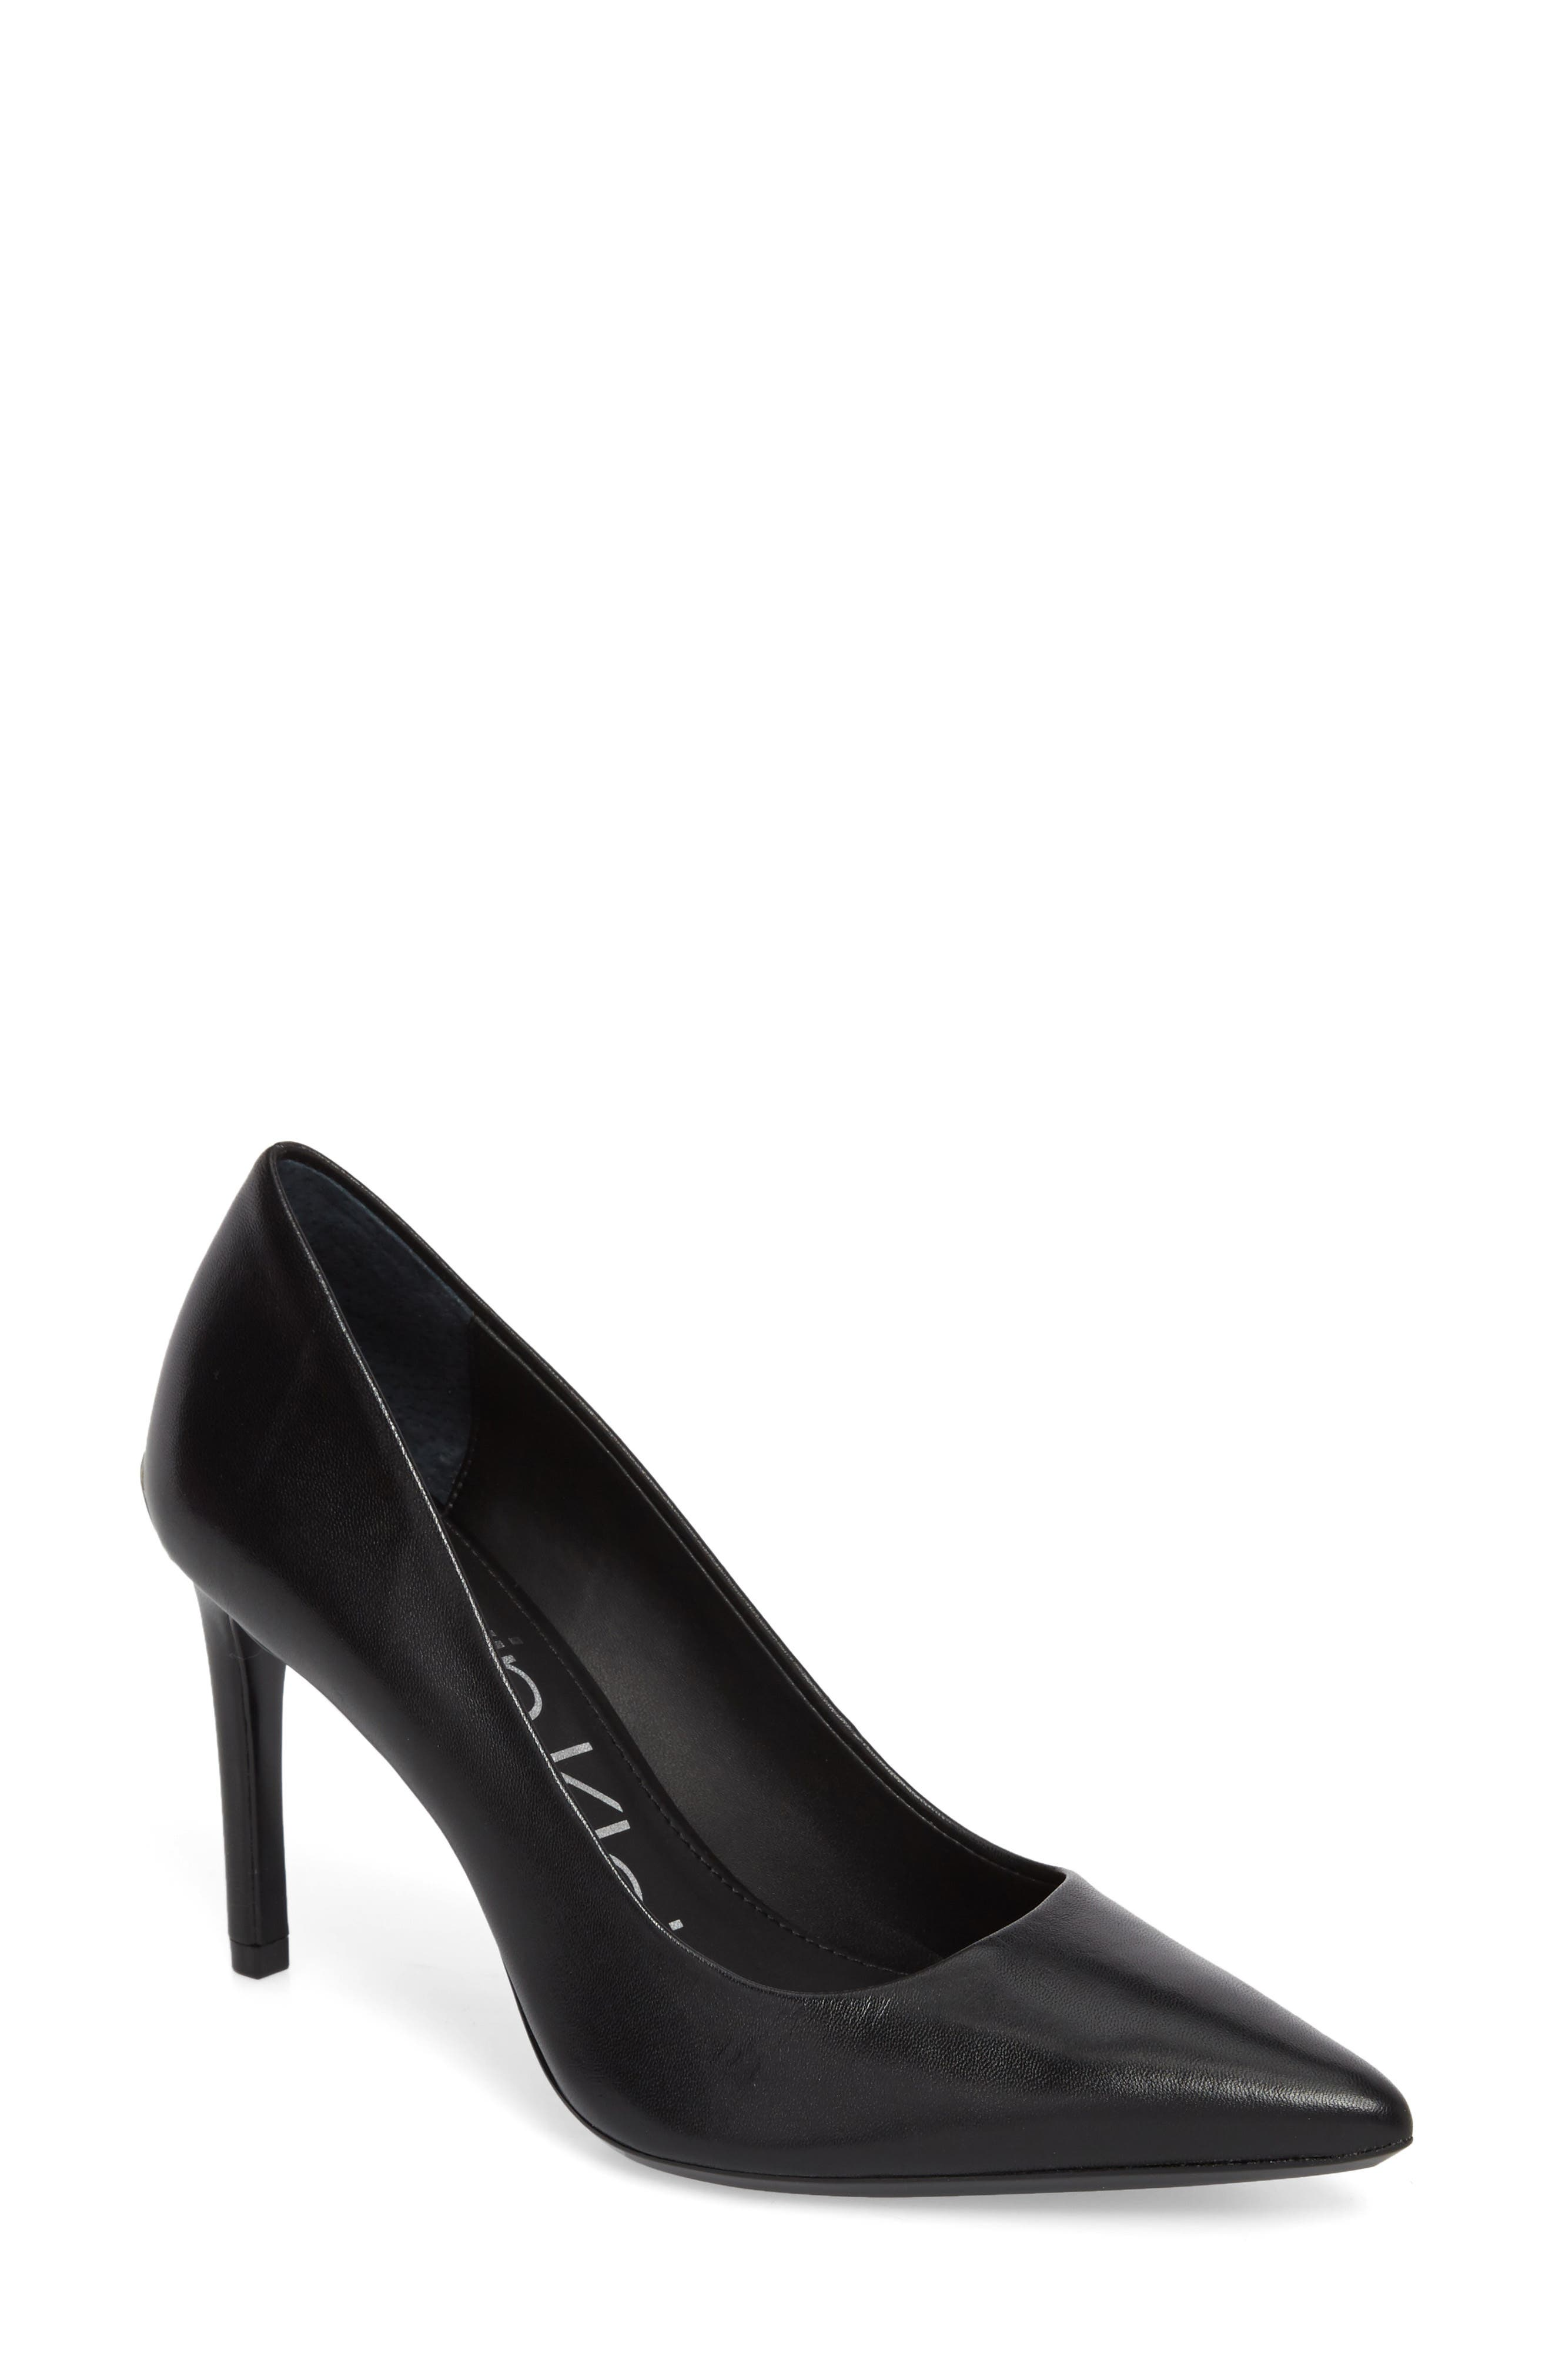 Ronna Pointy Toe Pump,                         Main,                         color, BLACK LEATHER